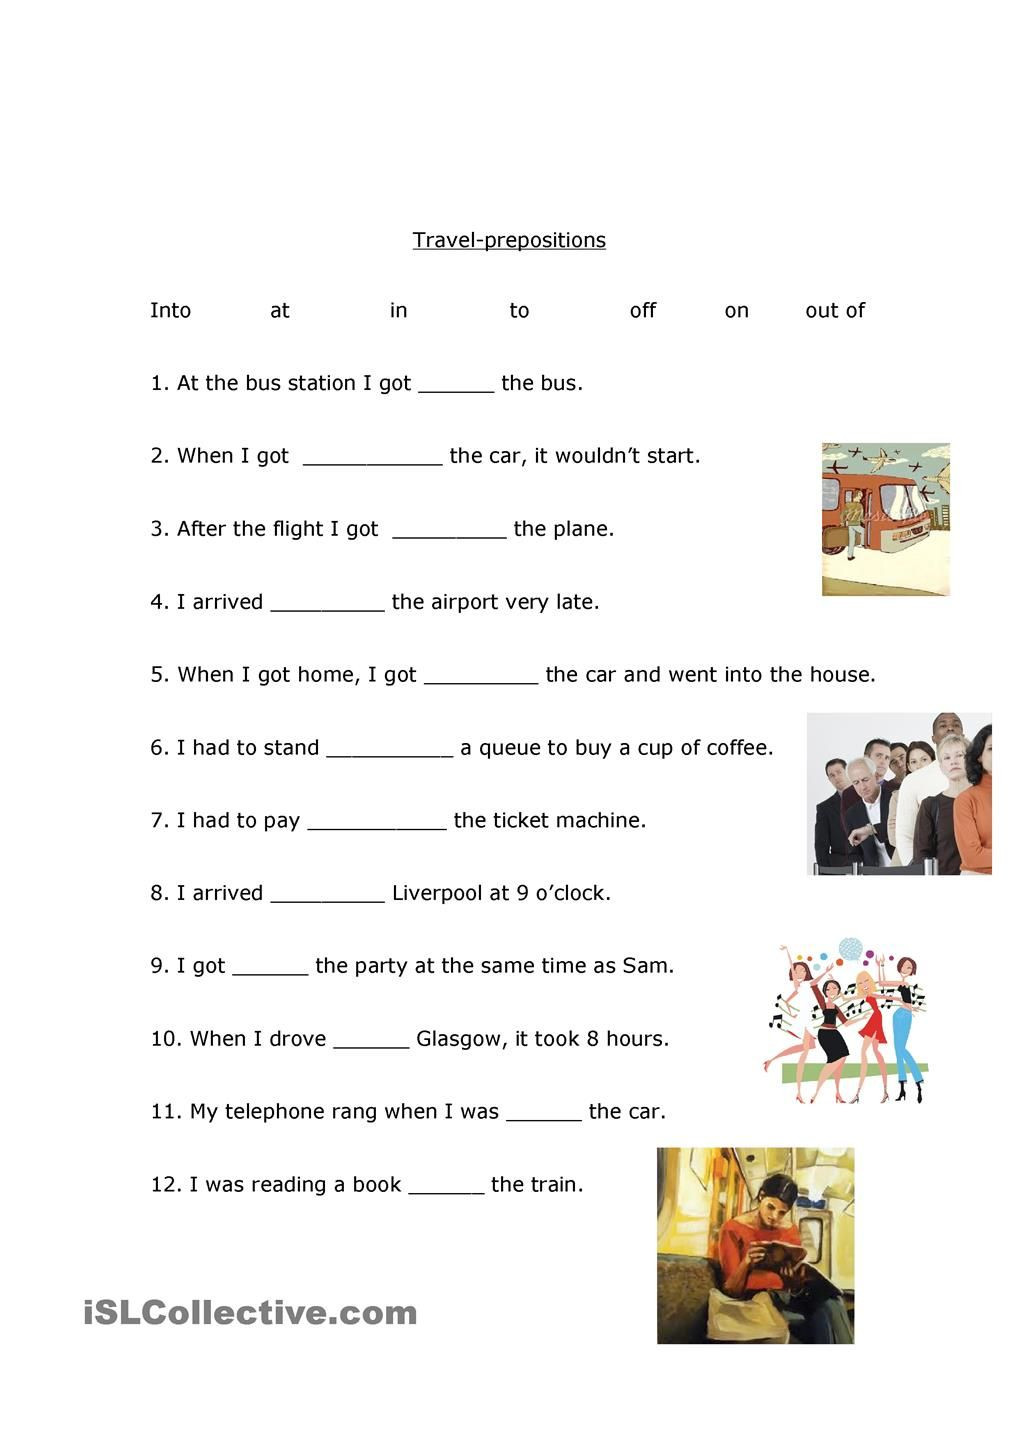 Preposition Worksheets for Middle School Travel Prepositions